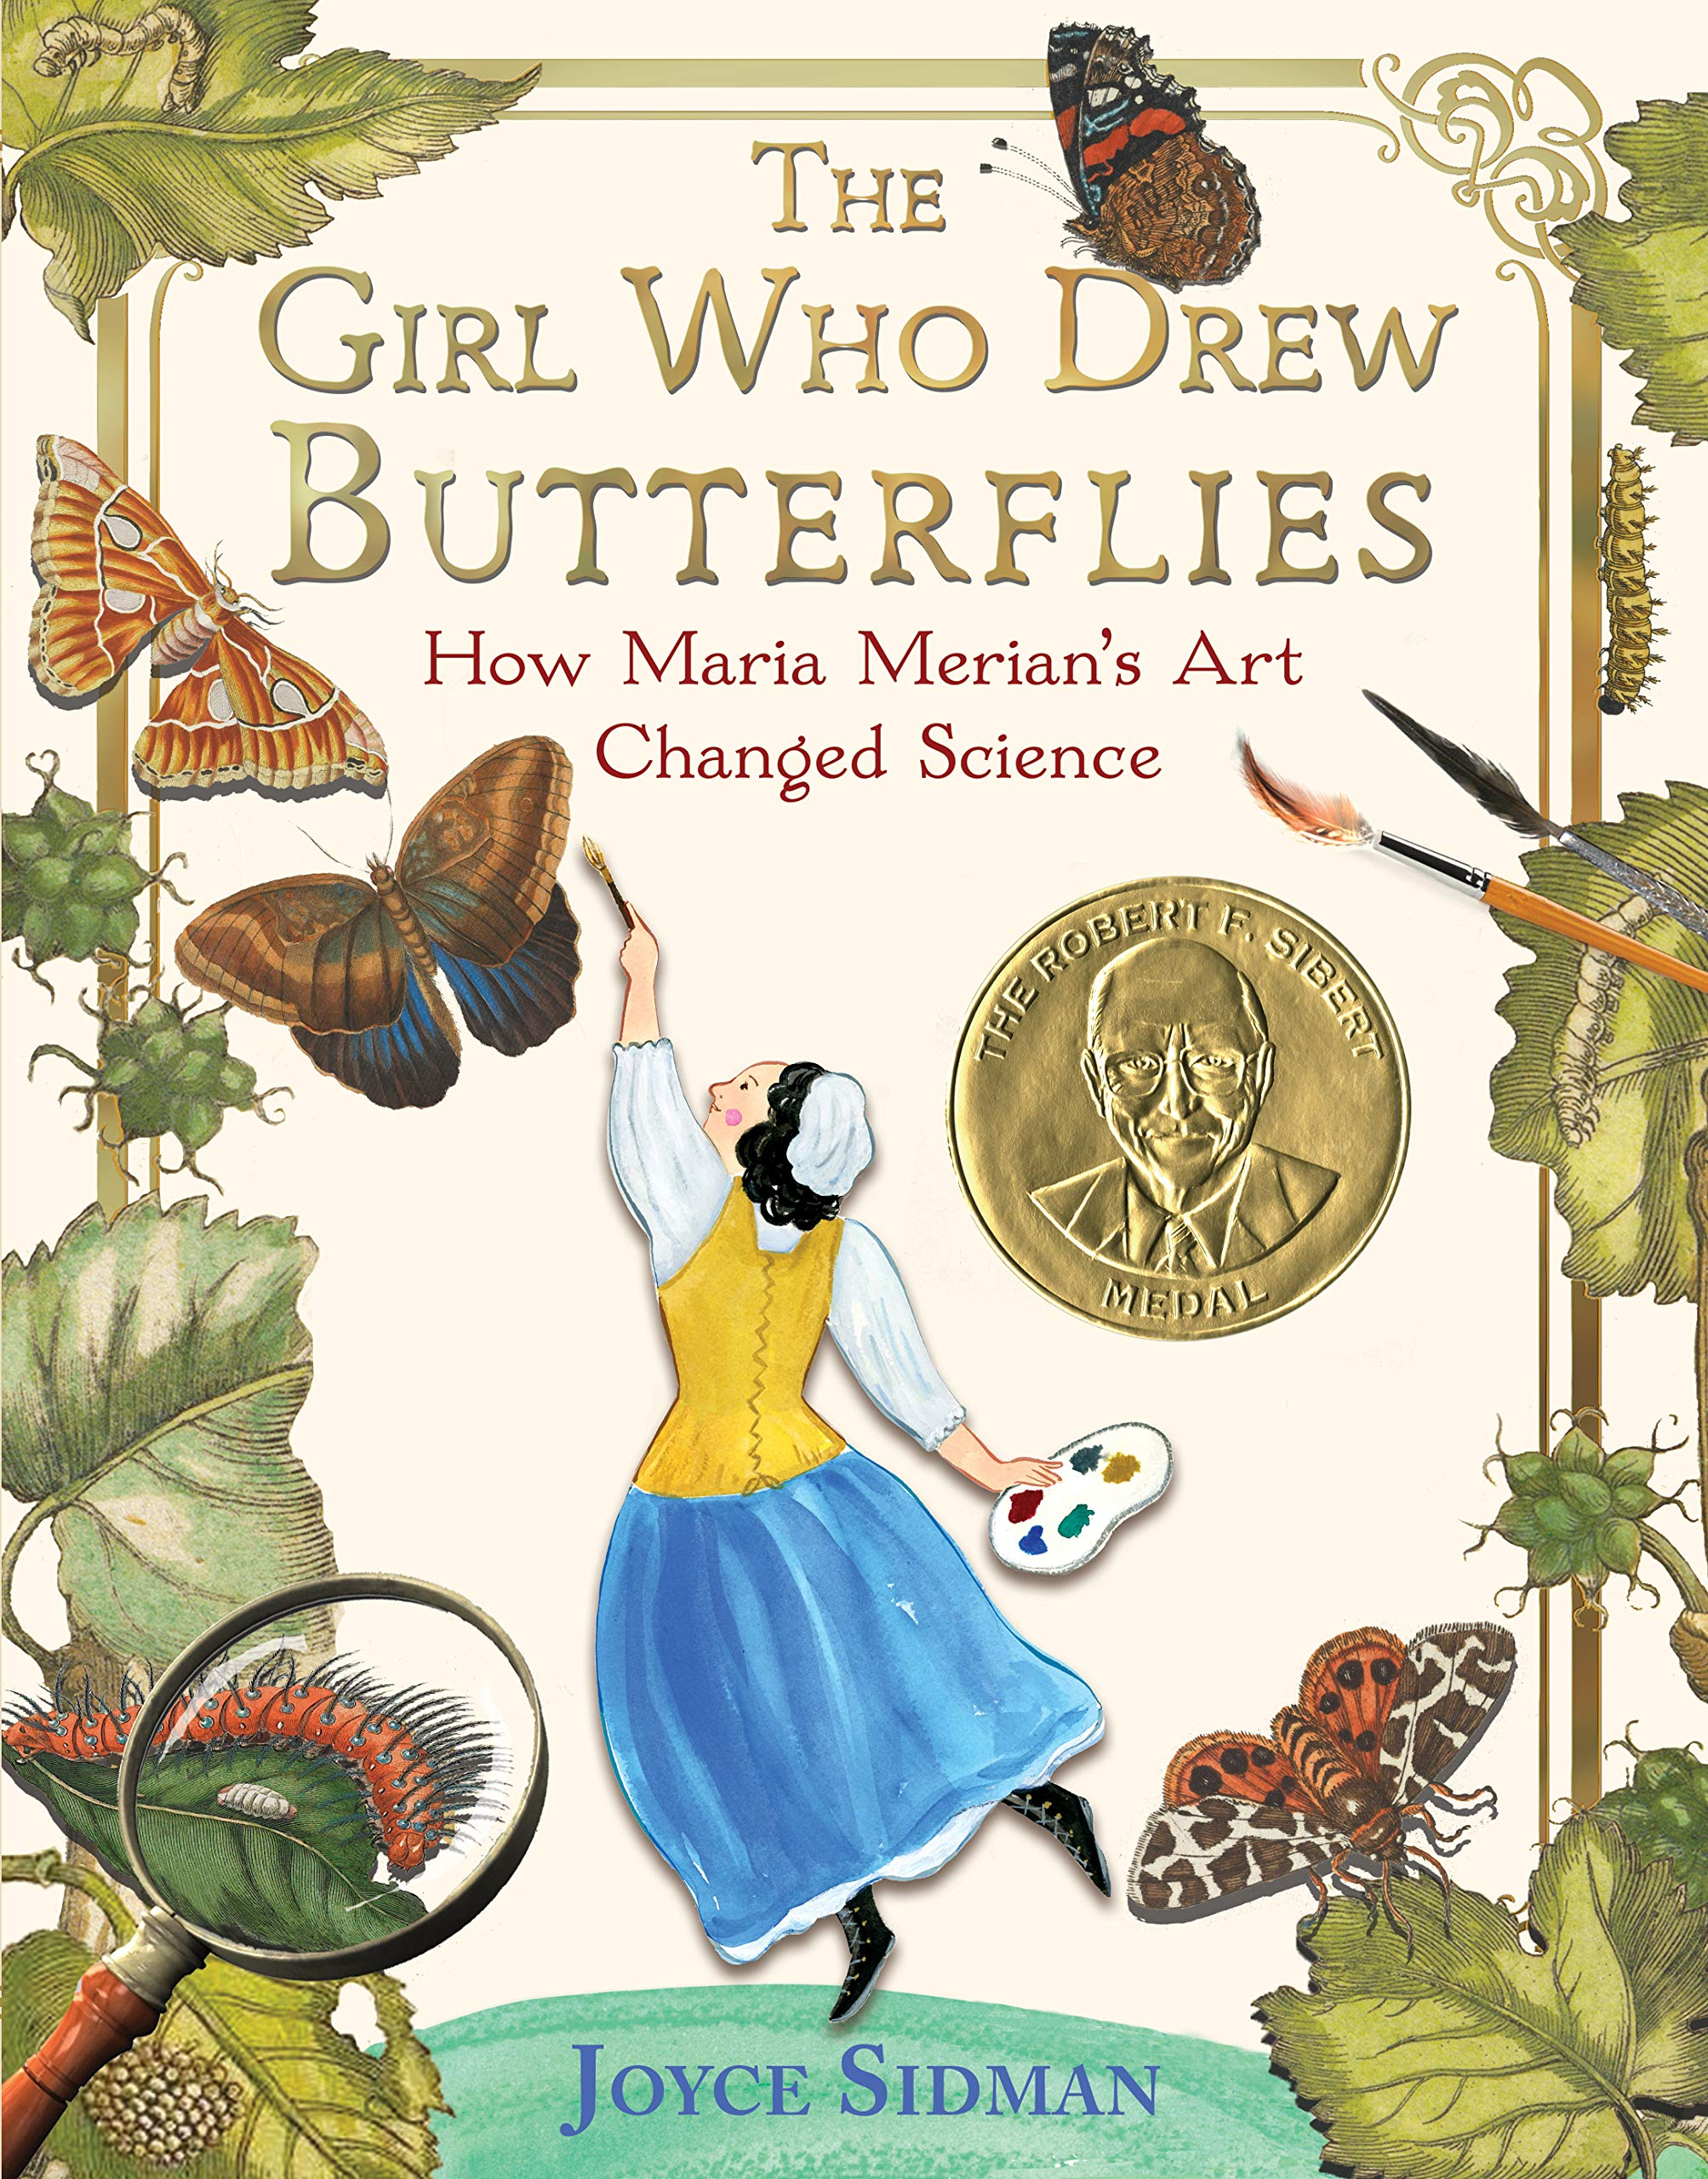 Image result for the girl who drew butterflies by joyce sidman